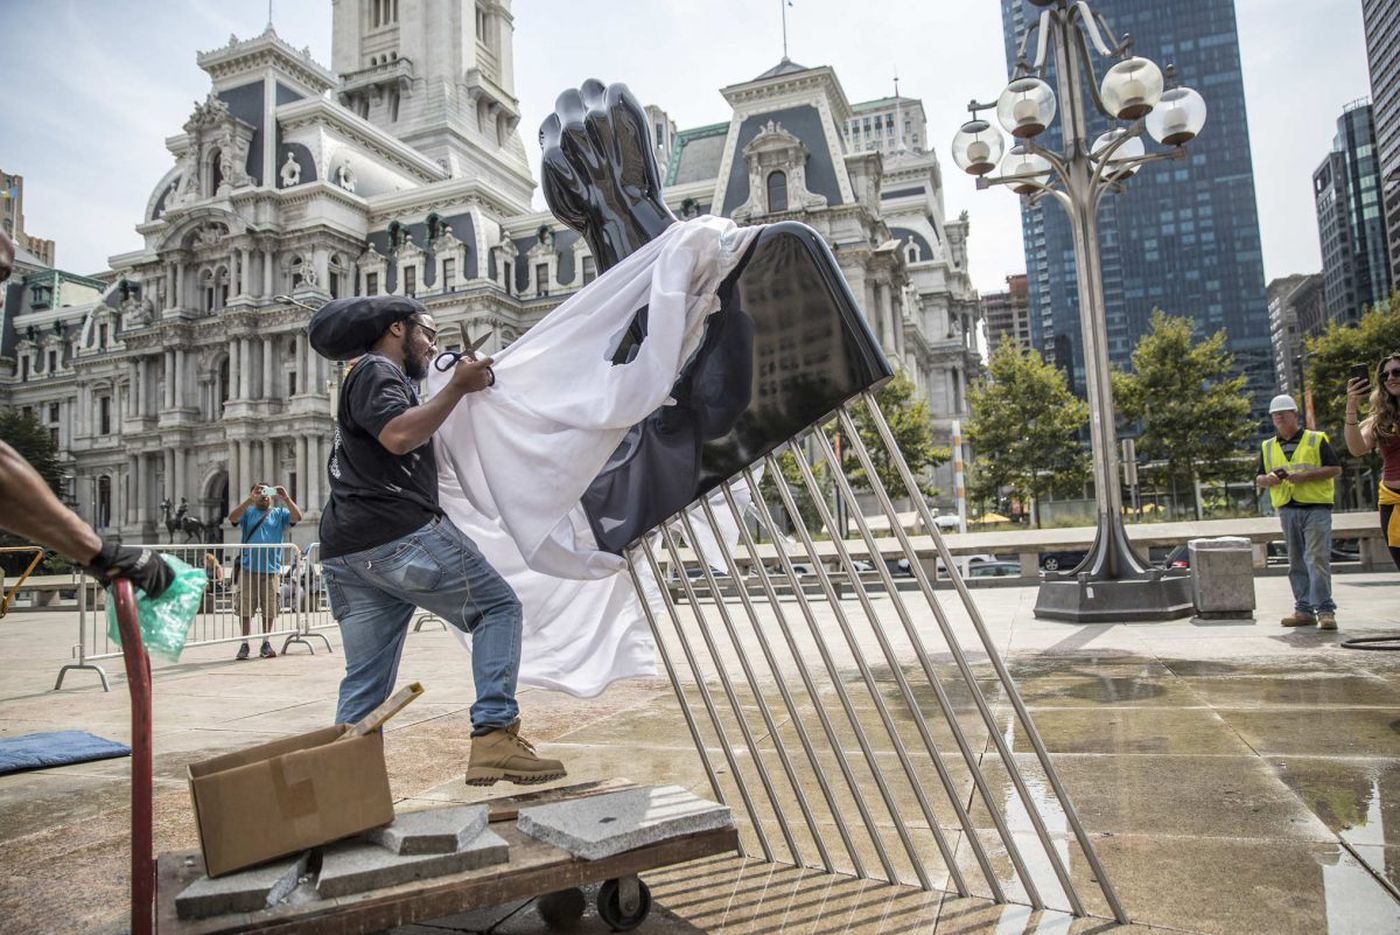 Mural Arts adds an Afro pick sculpture to the plaza with Rizzo's statue